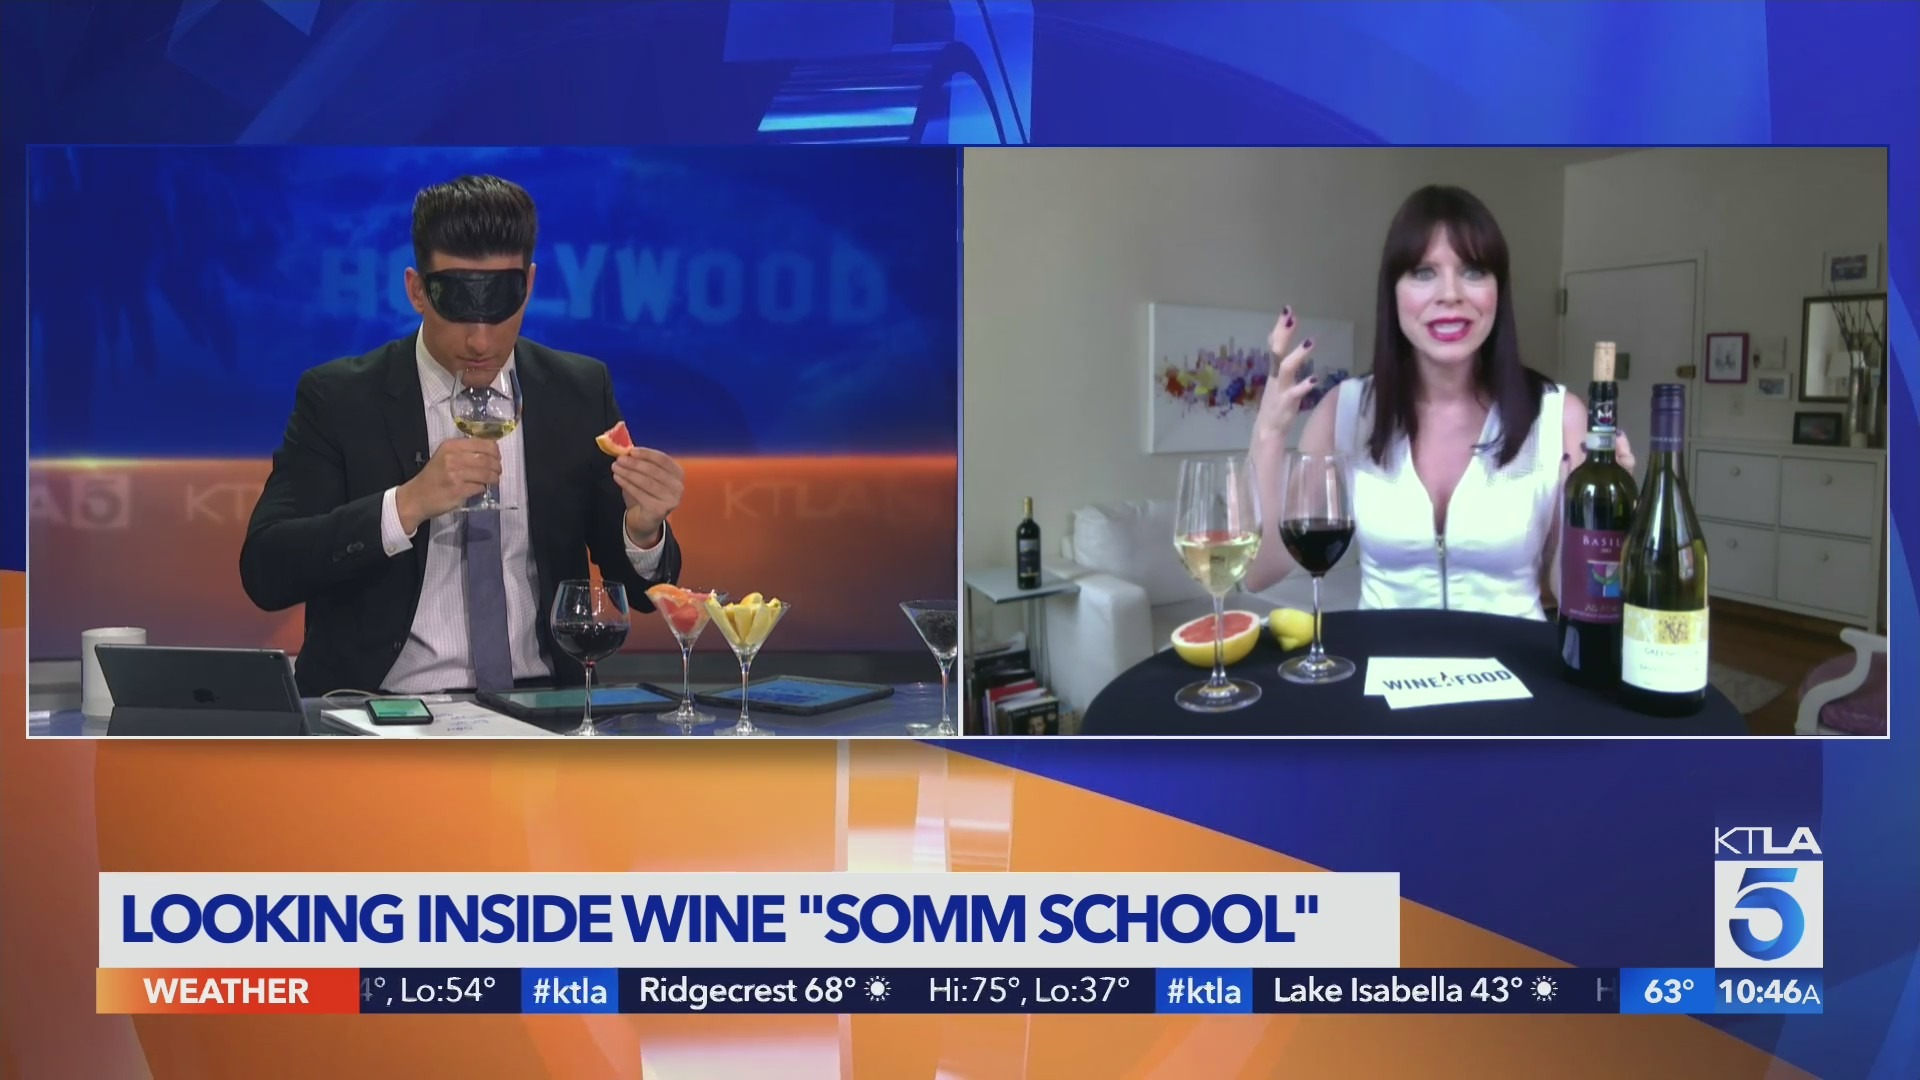 Somm School Insider takes us to wine school